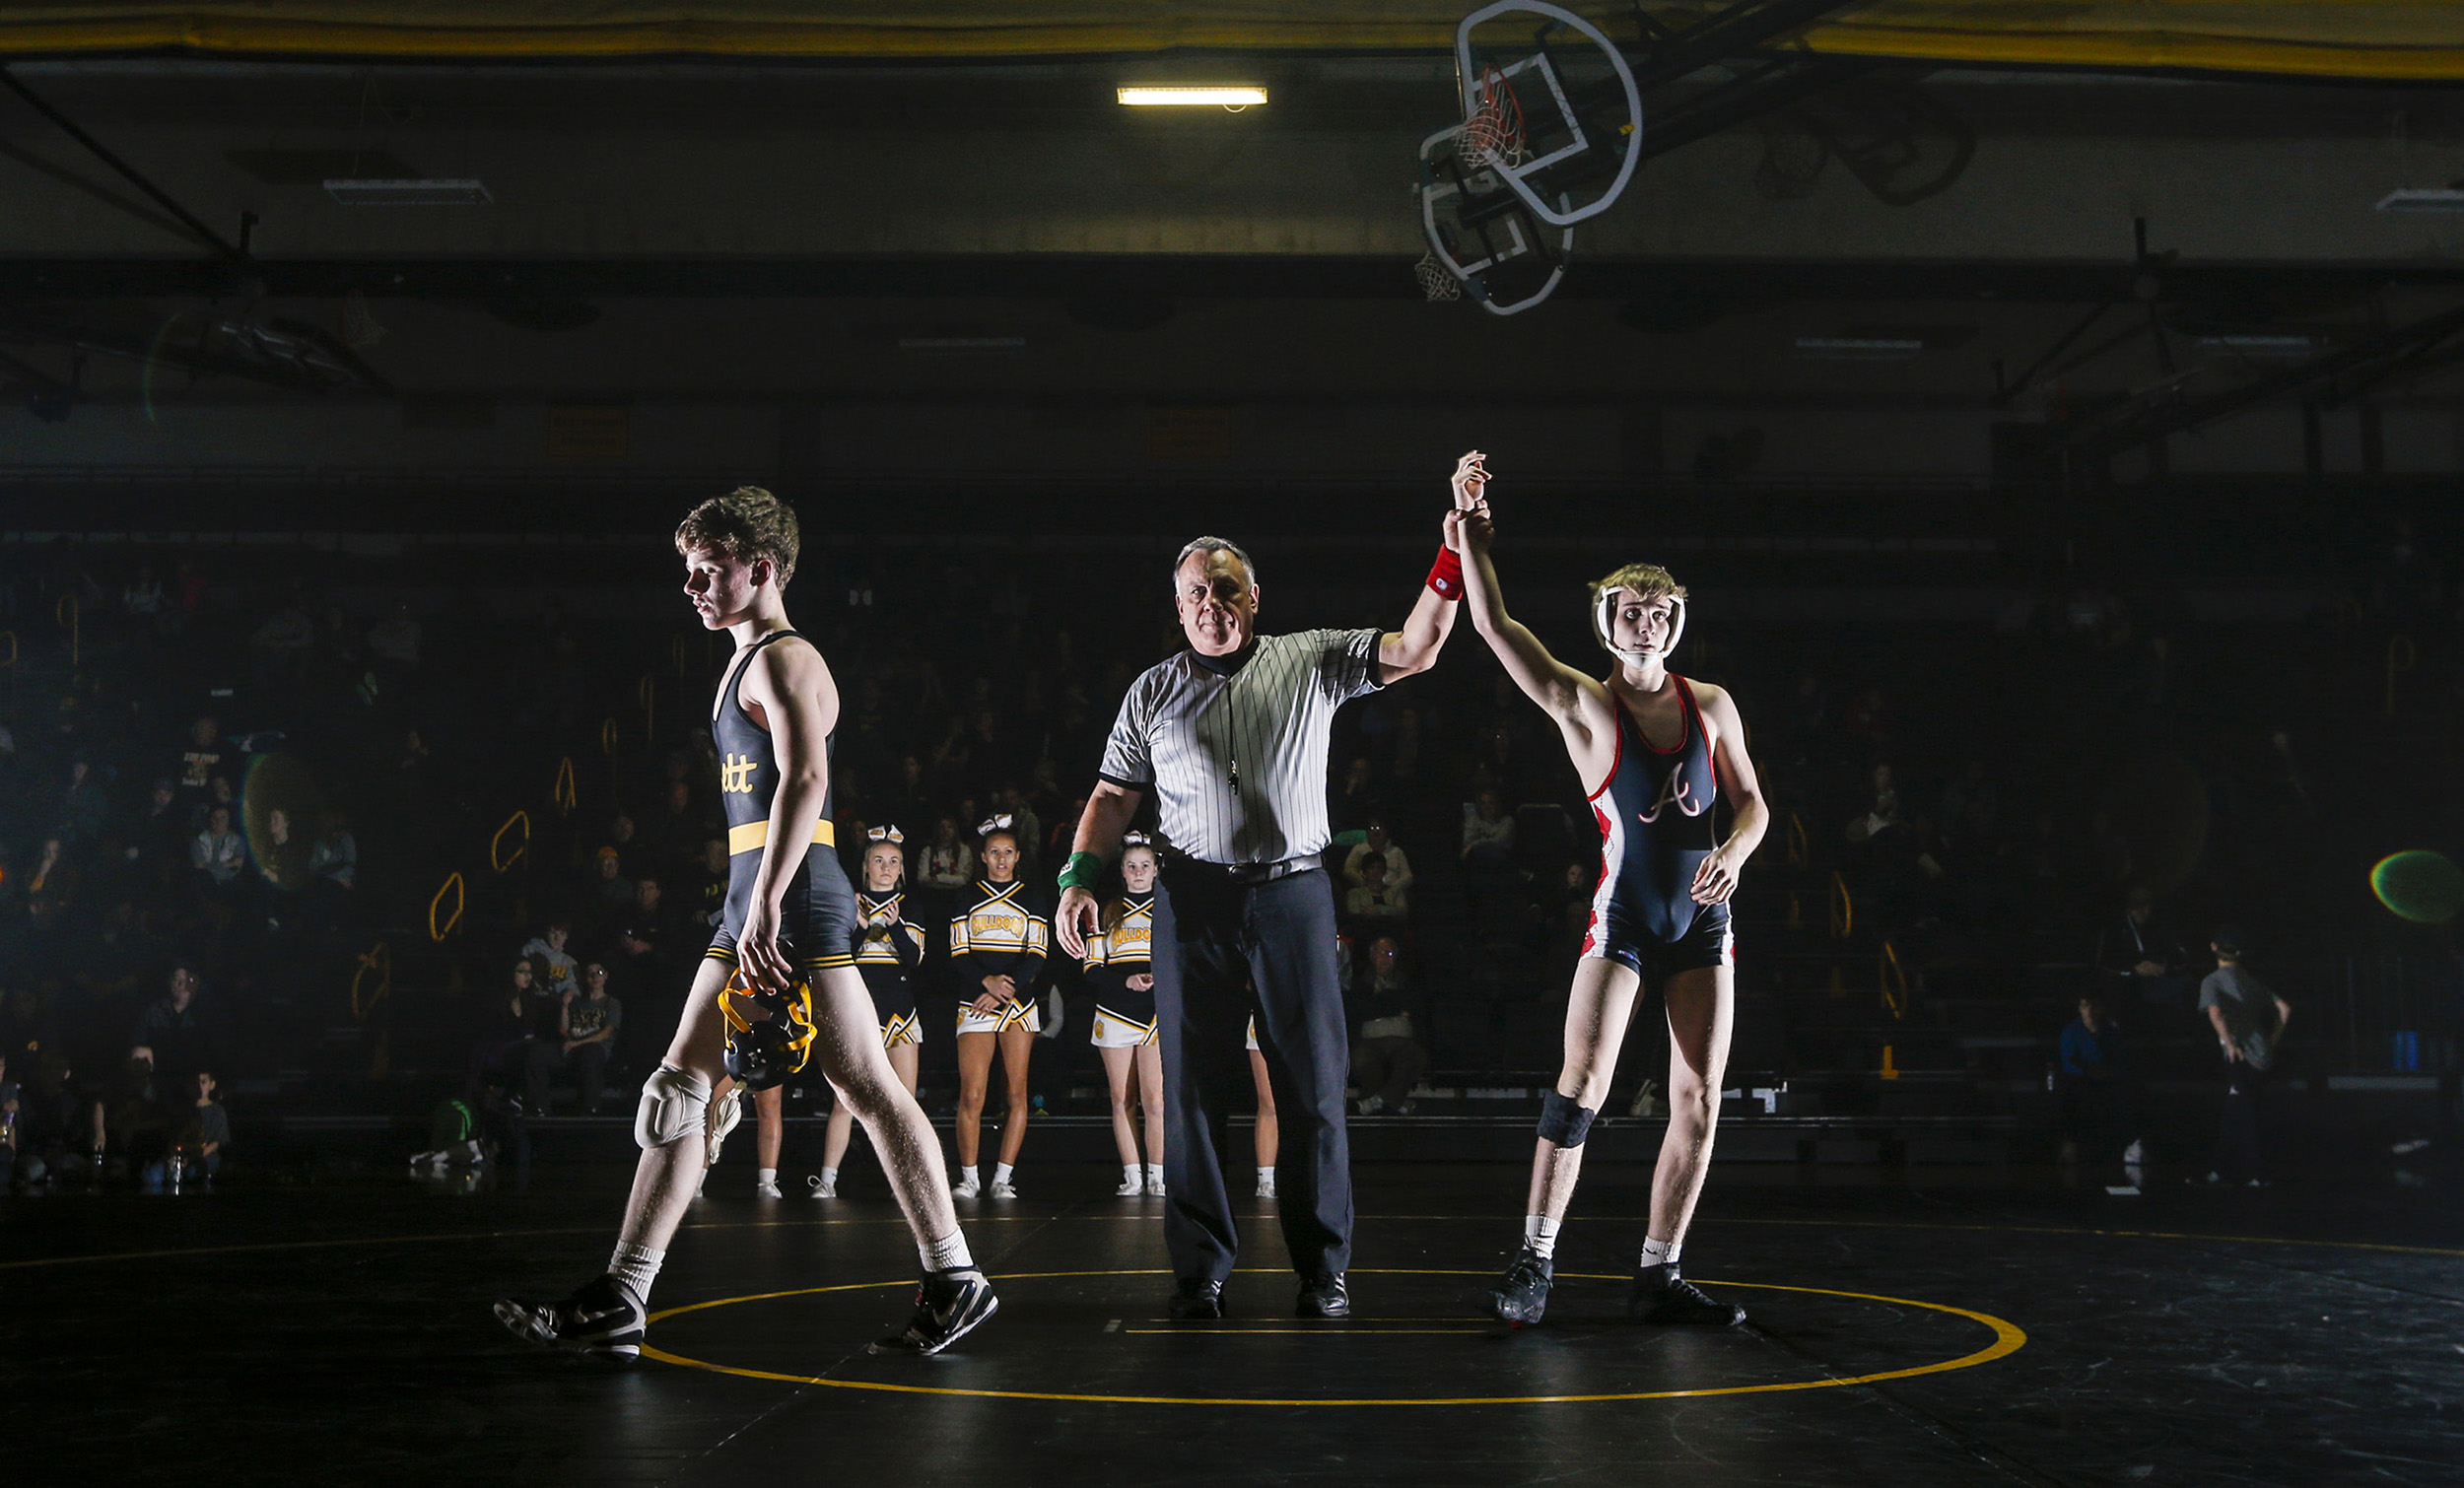 Bettendorf sophomore Voyen Adamson walks off the mat after losing his 126 weight match to Assumption senior Sean Casey during their dual at Bettendorf High School, Wednesday, January 11, 2017. Bettendorf won the dual 36-35 on criteria after a tie.